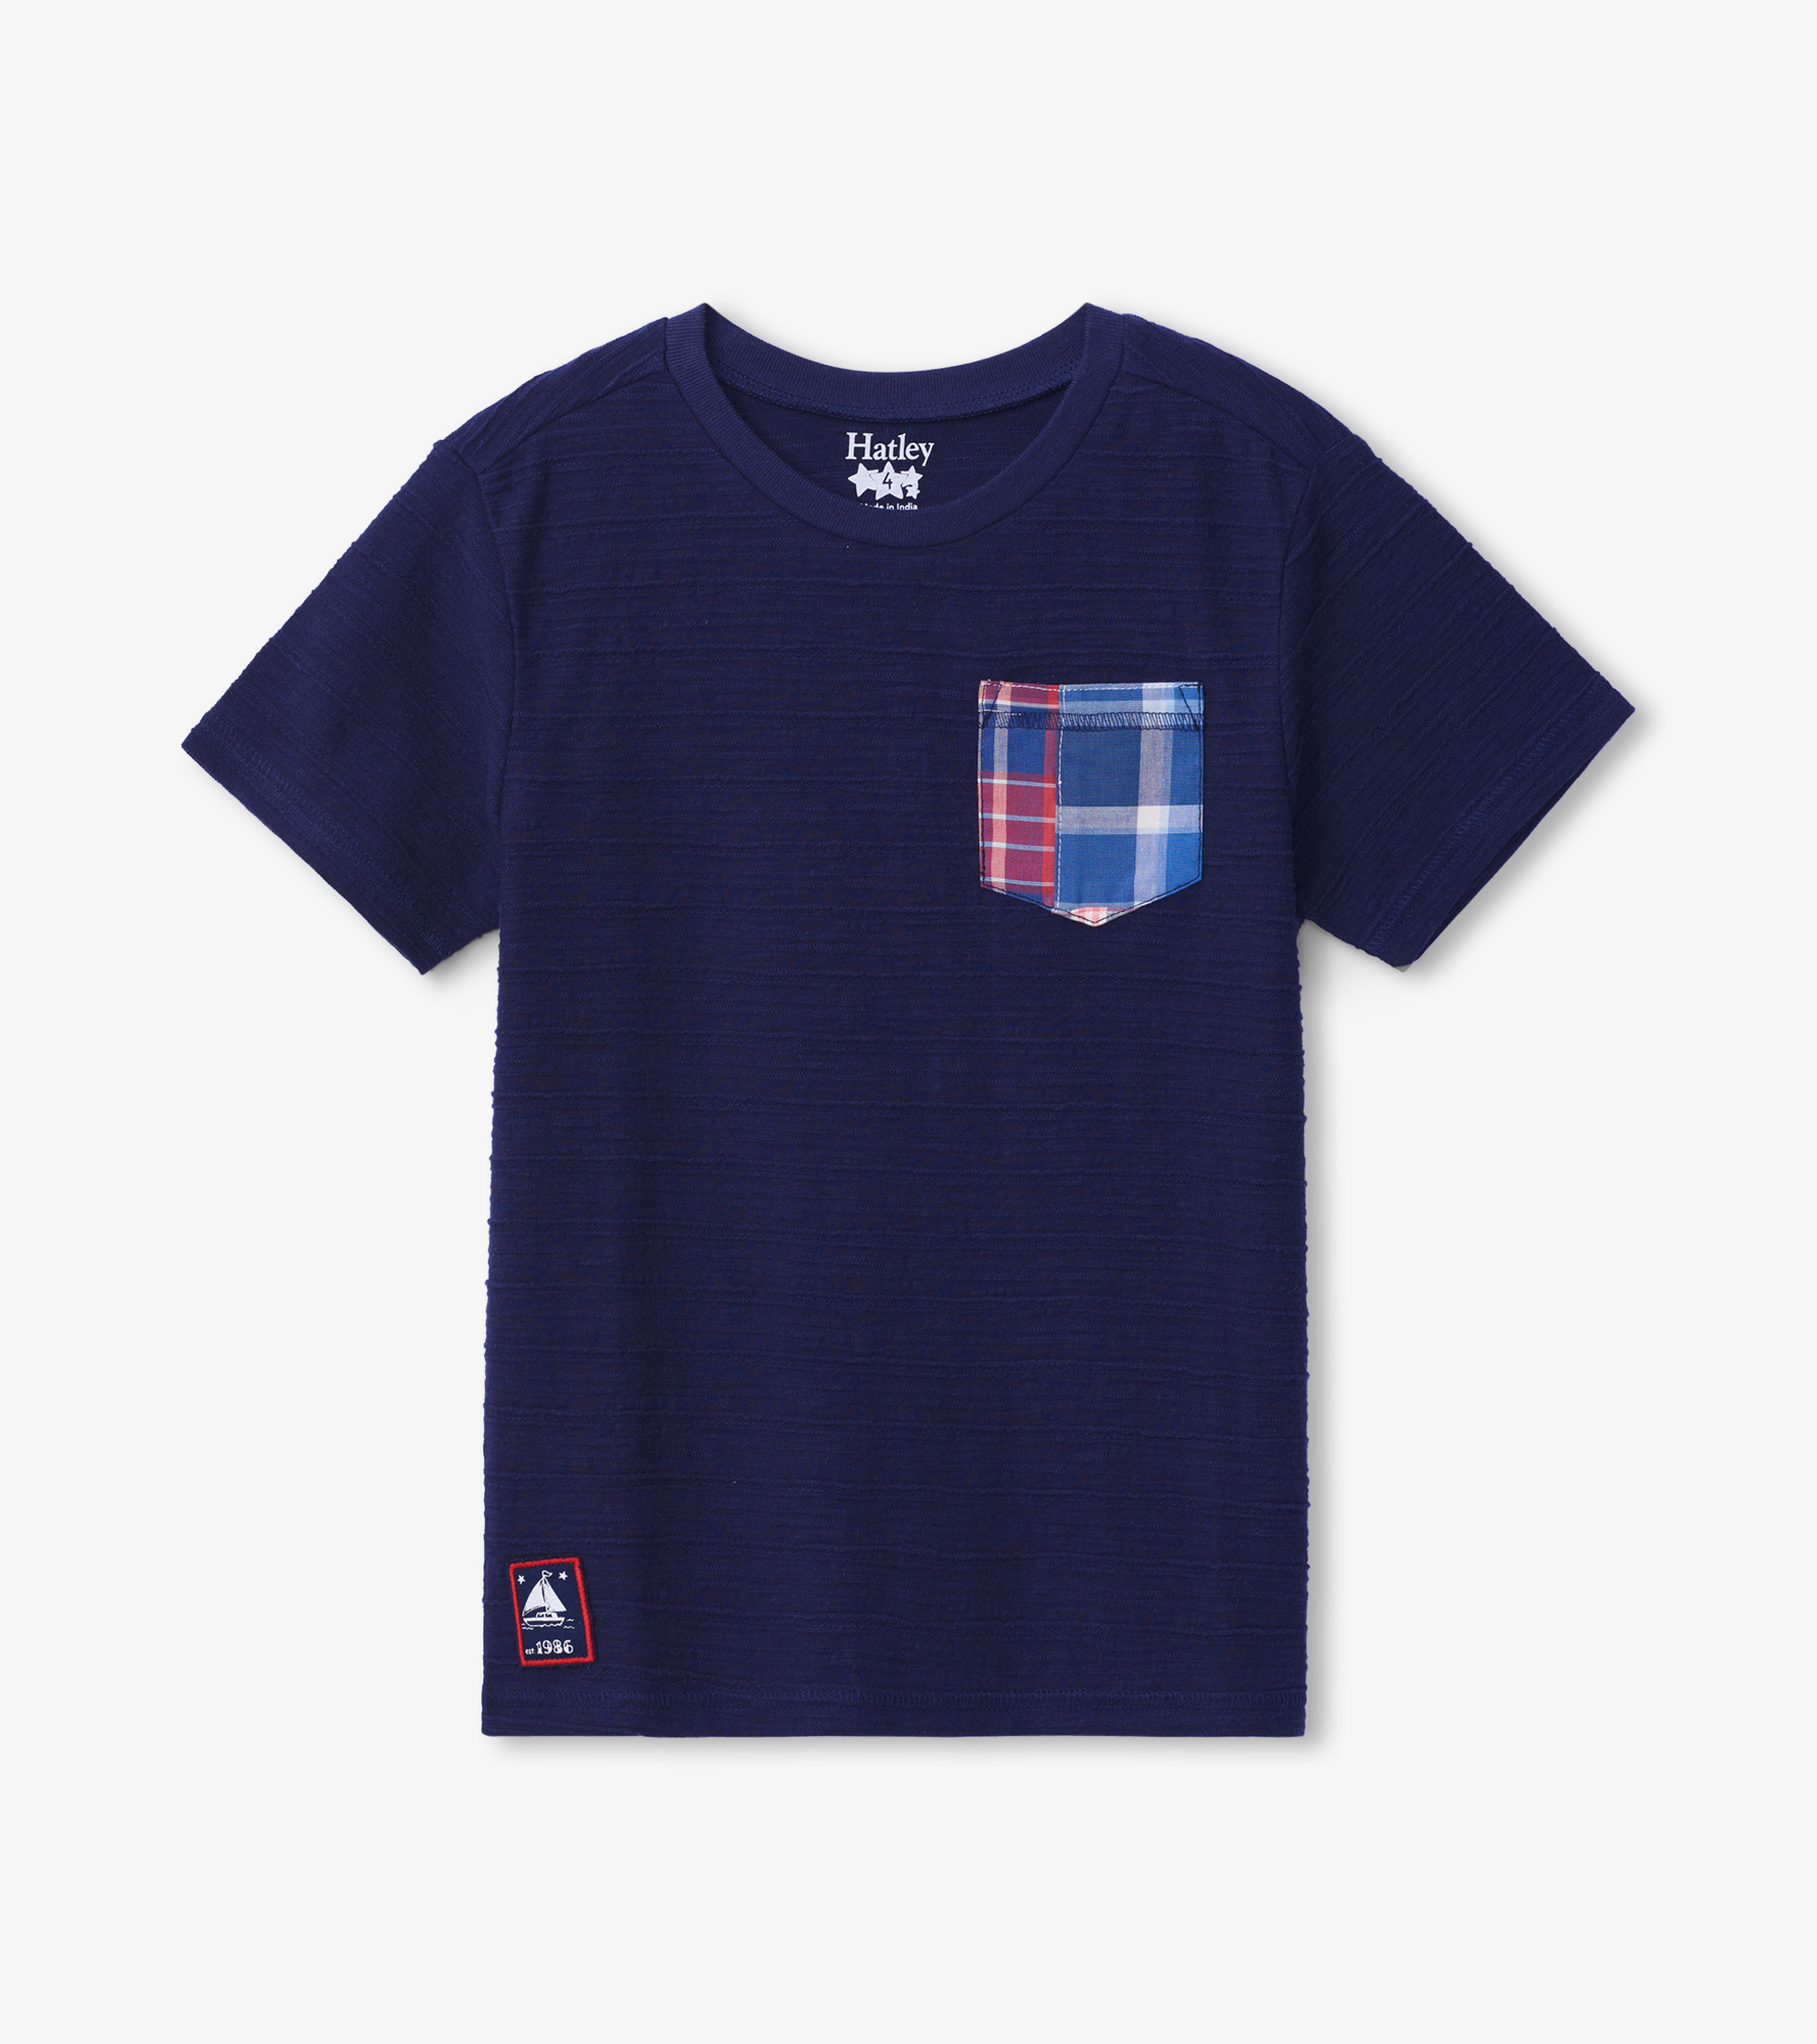 NOW £11 Hatley Graphic Front Pocket Tee Navy (was £17)